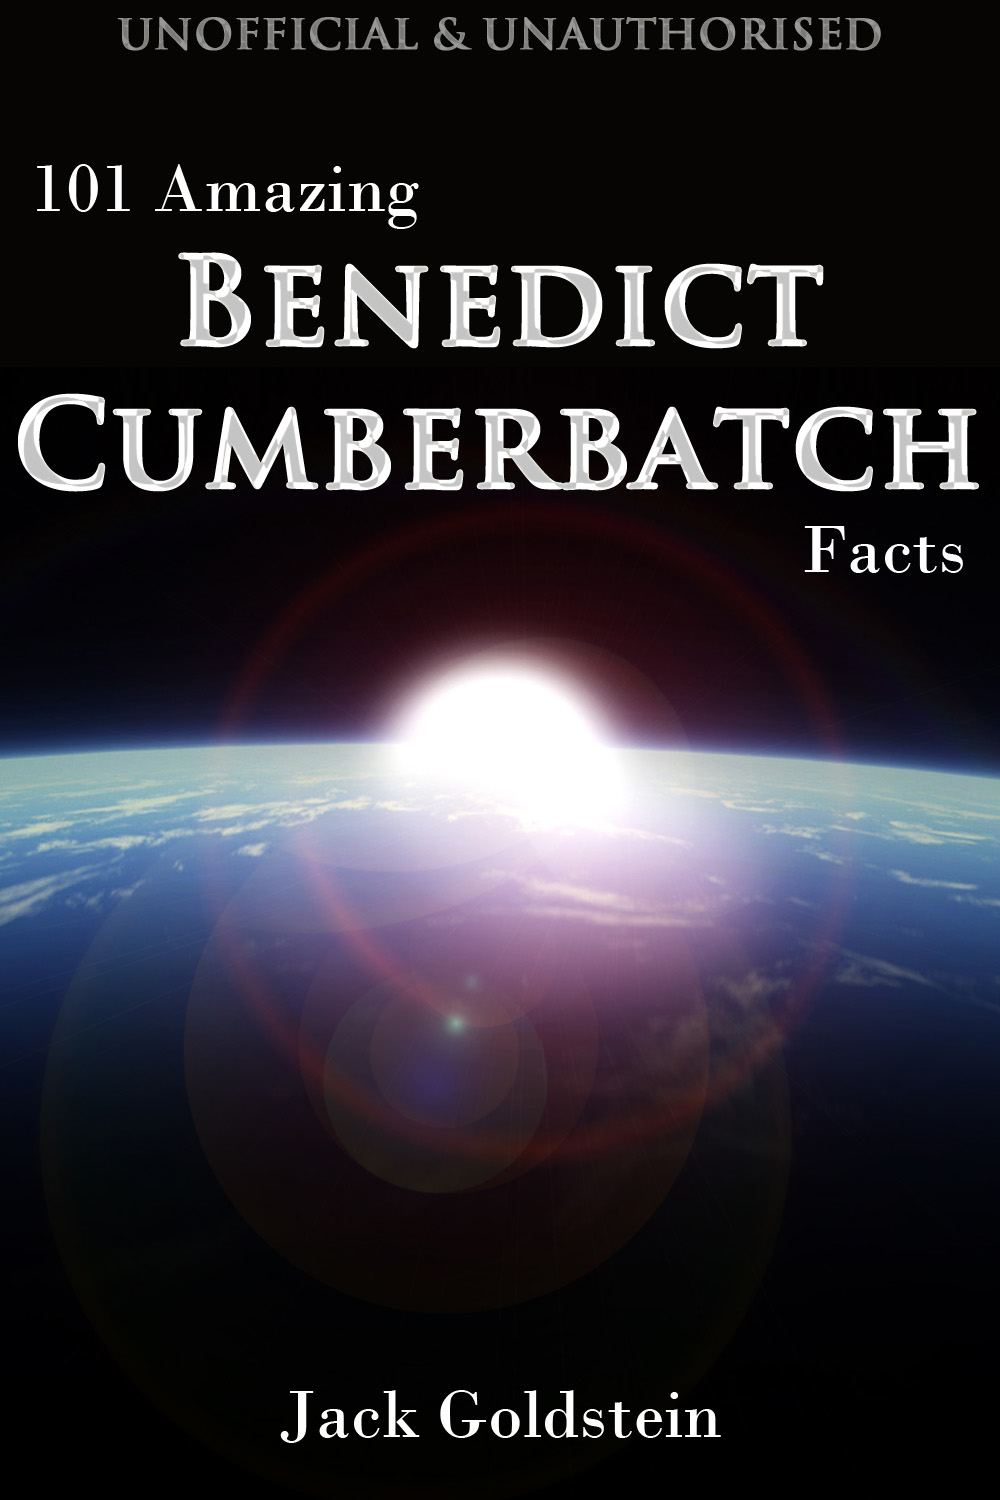 101 Amazing Benedict Cumberbatch Facts